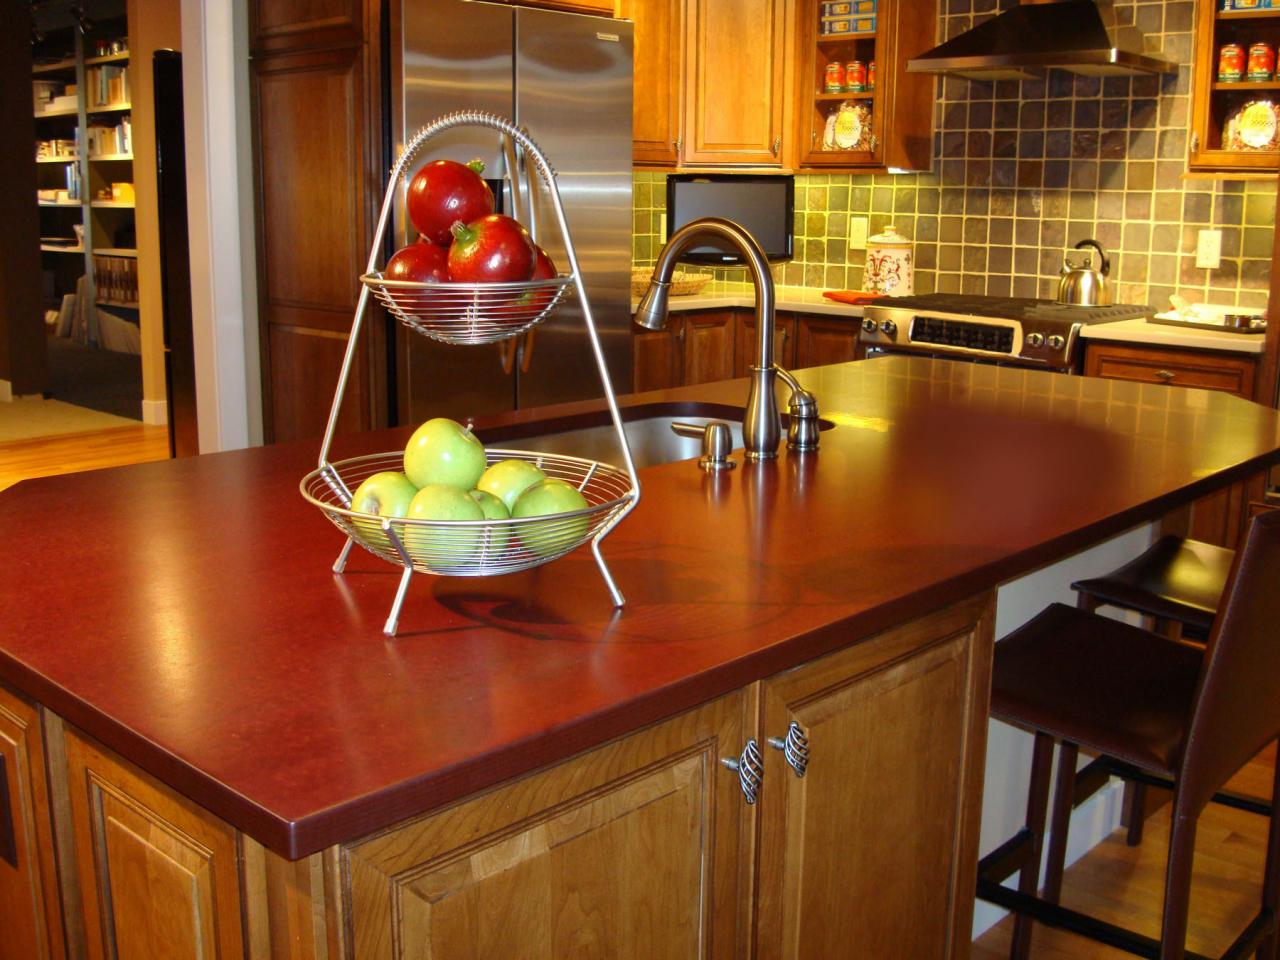 Kitchen countertop styles and trends kitchen designs for Style kitchen countertops